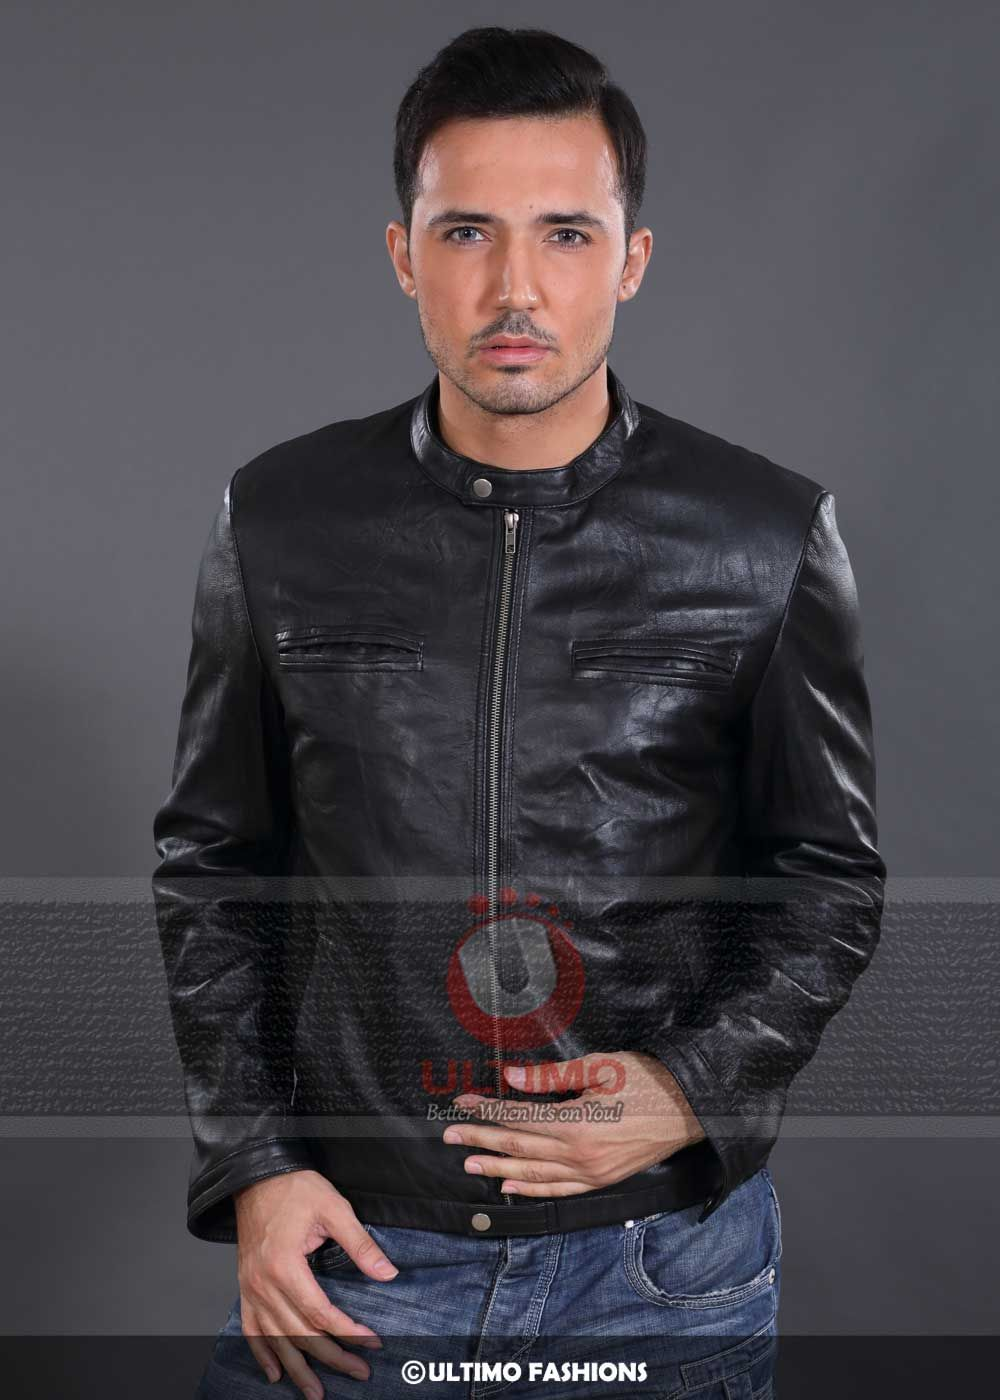 17 Again OBLOW Leather Jacket For Mens Zac Efron appeared